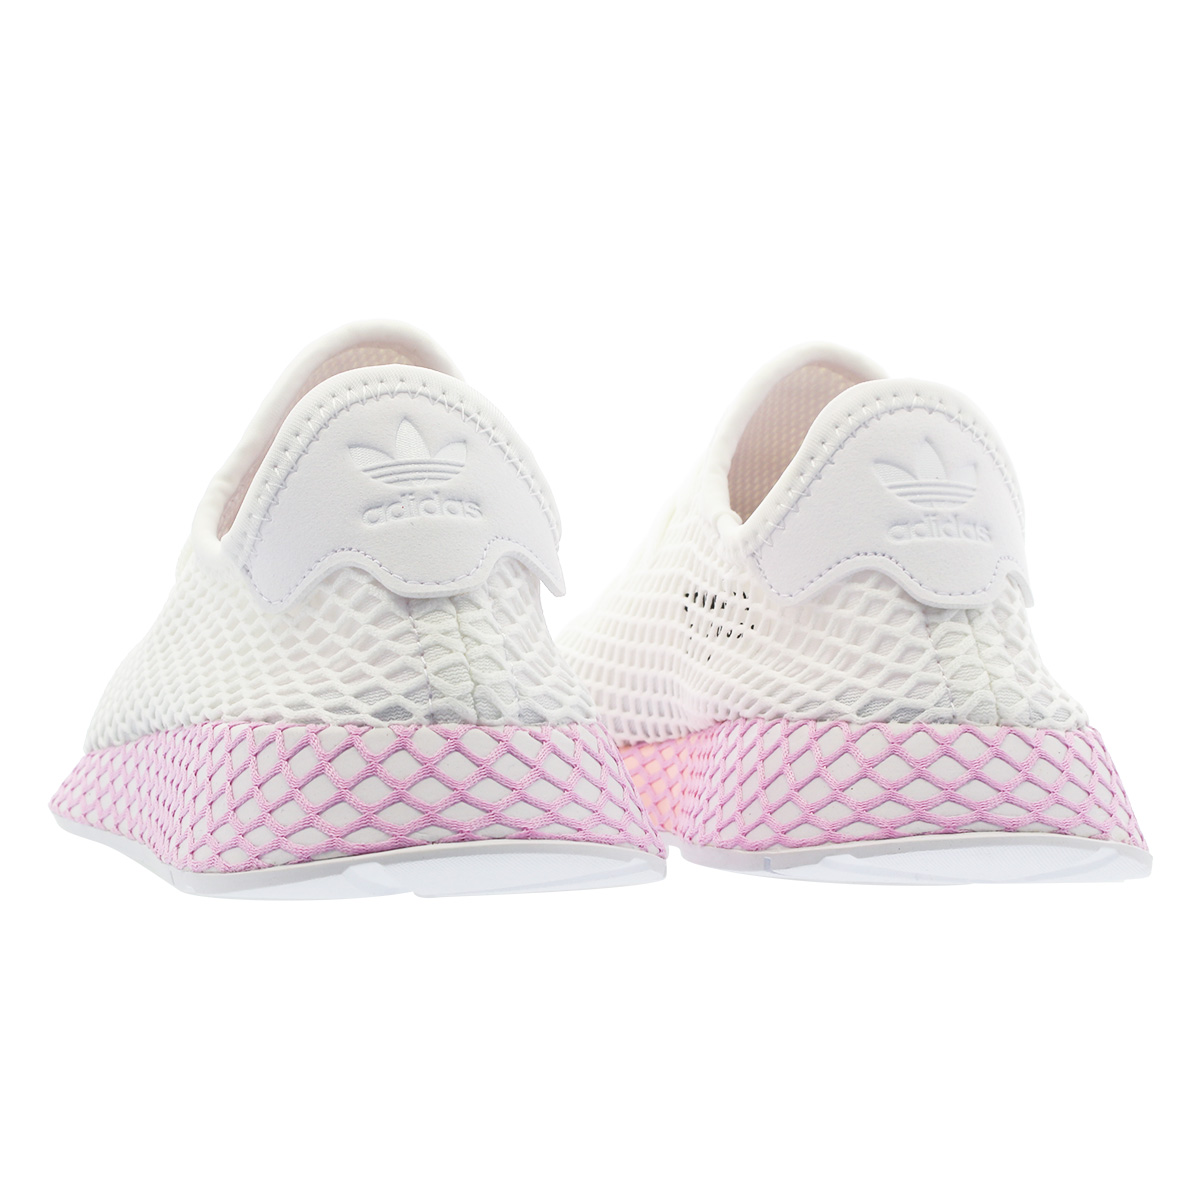 check out ae85c 4e110 ADIDAS DEERUPT RUNNER B37601